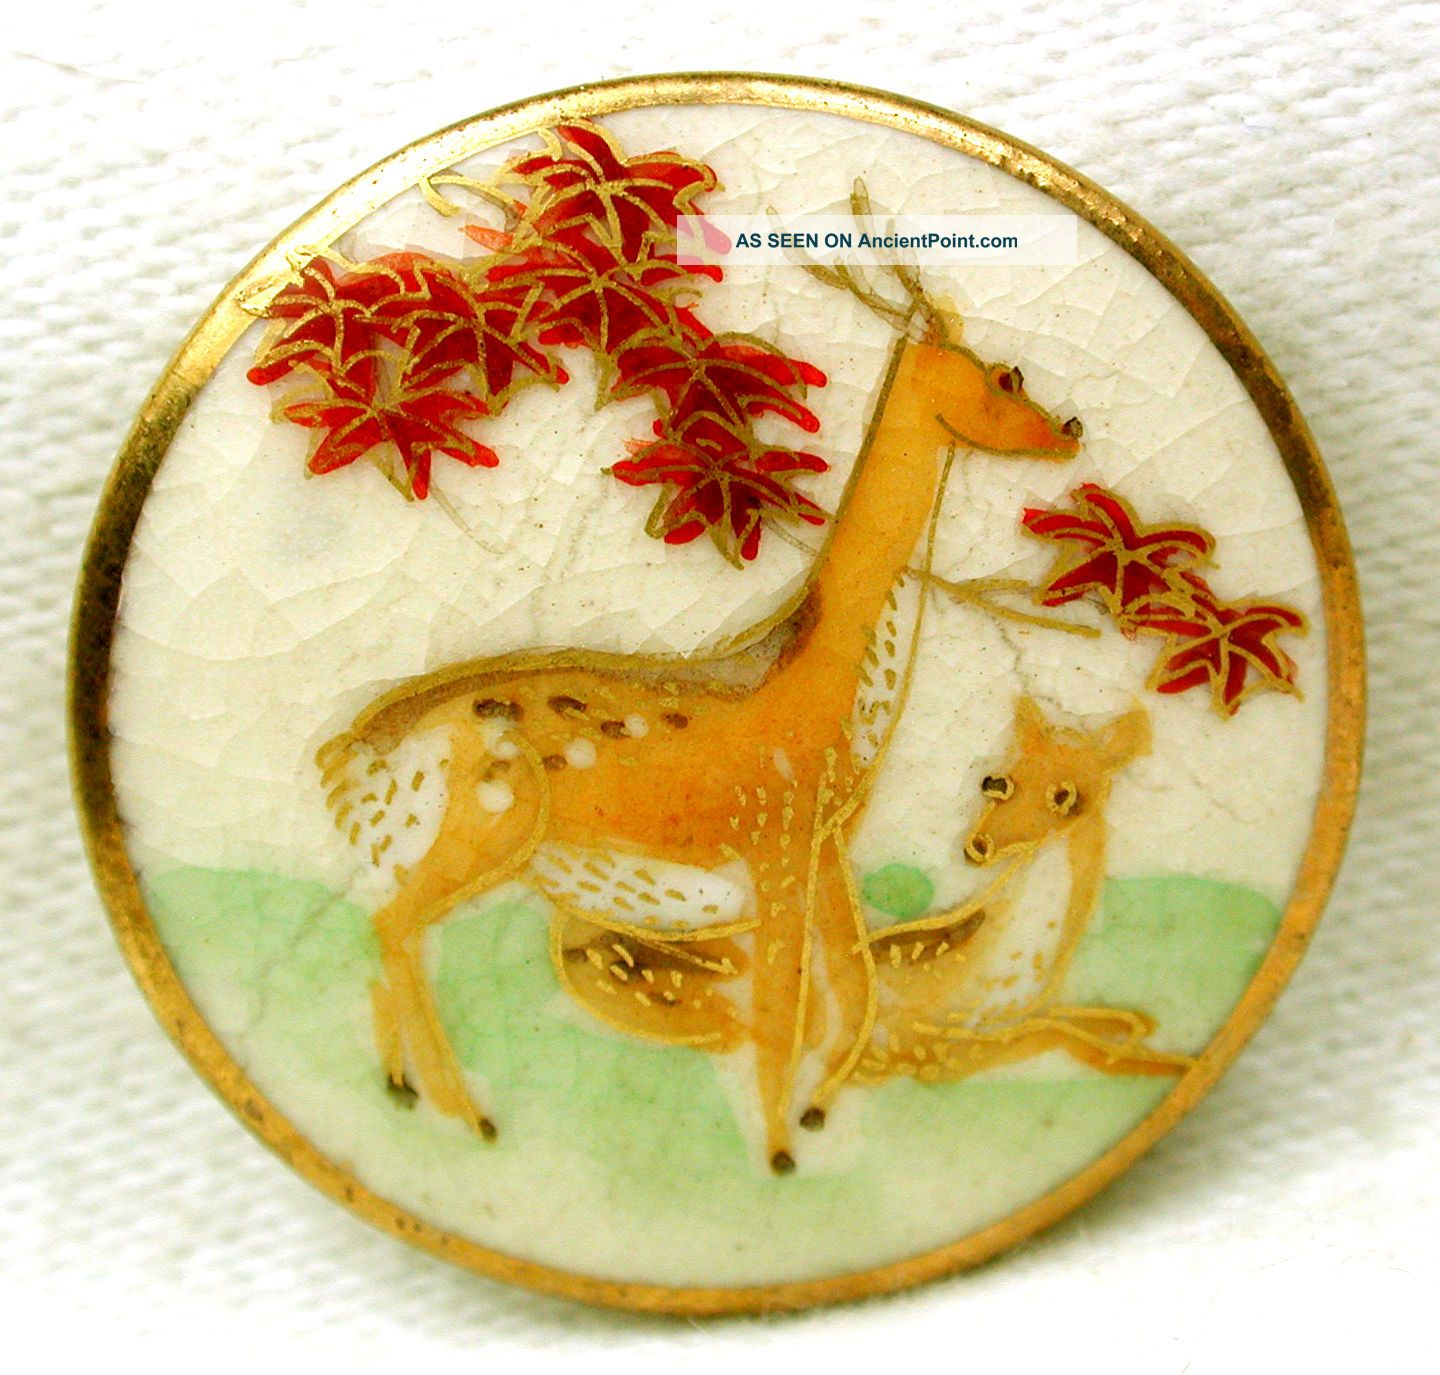 Vintage Satsuma Buttons 2 Deer Pictorial W/ Gold Accents - 1 & 1/16